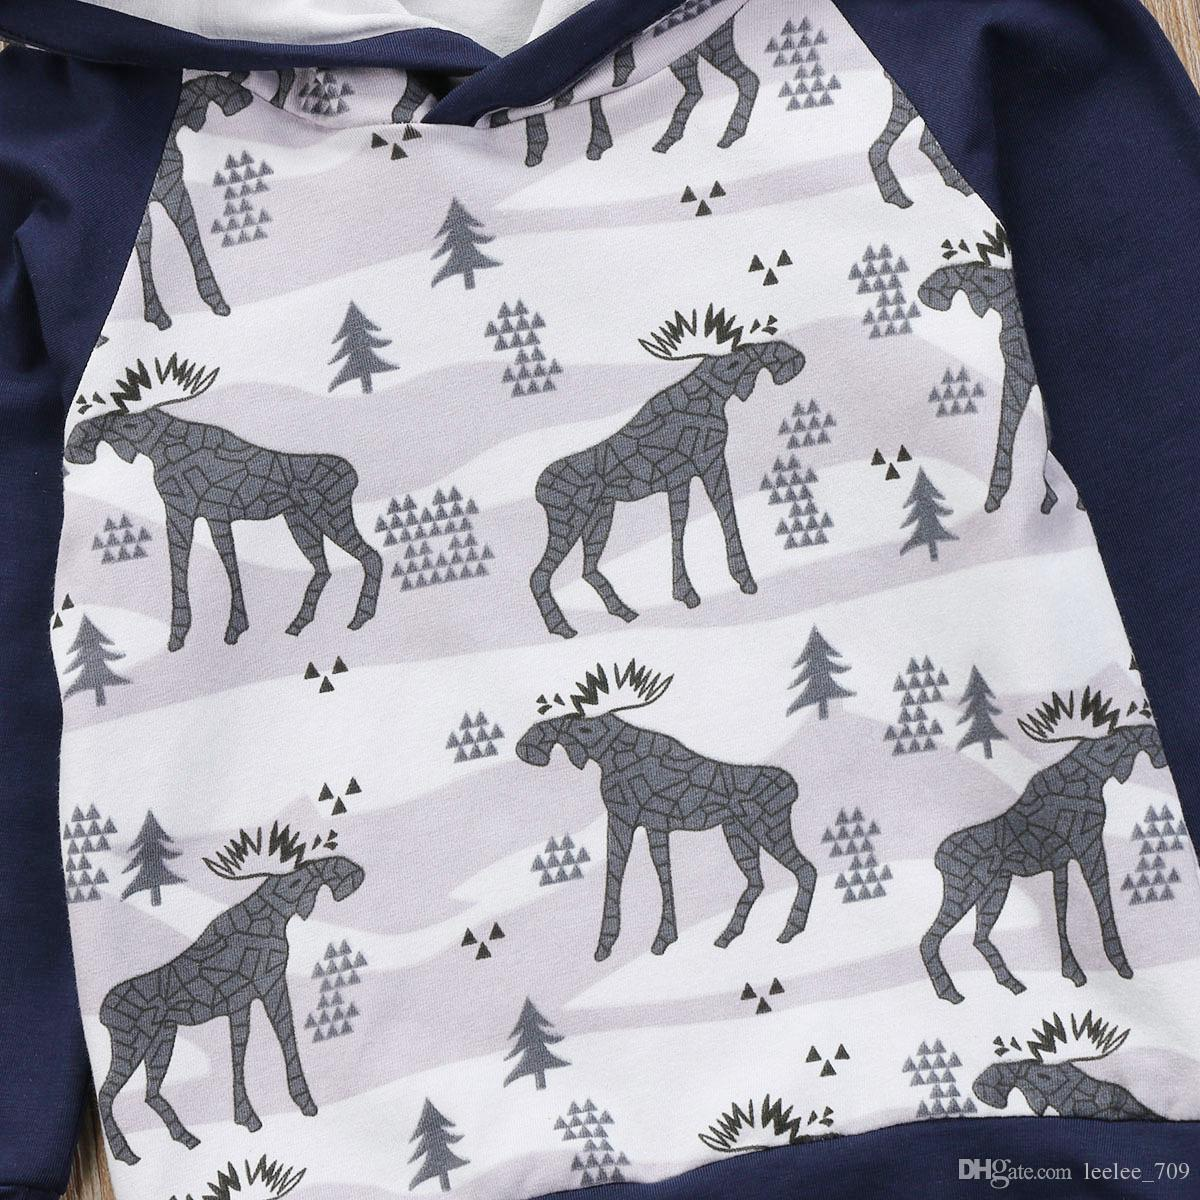 Kids Tops Hoodie Top Pant Leggings Cute Animals Kids Baby Clothes Set Warm Outfits Deer Baby Boys Girls Christmas Clothes